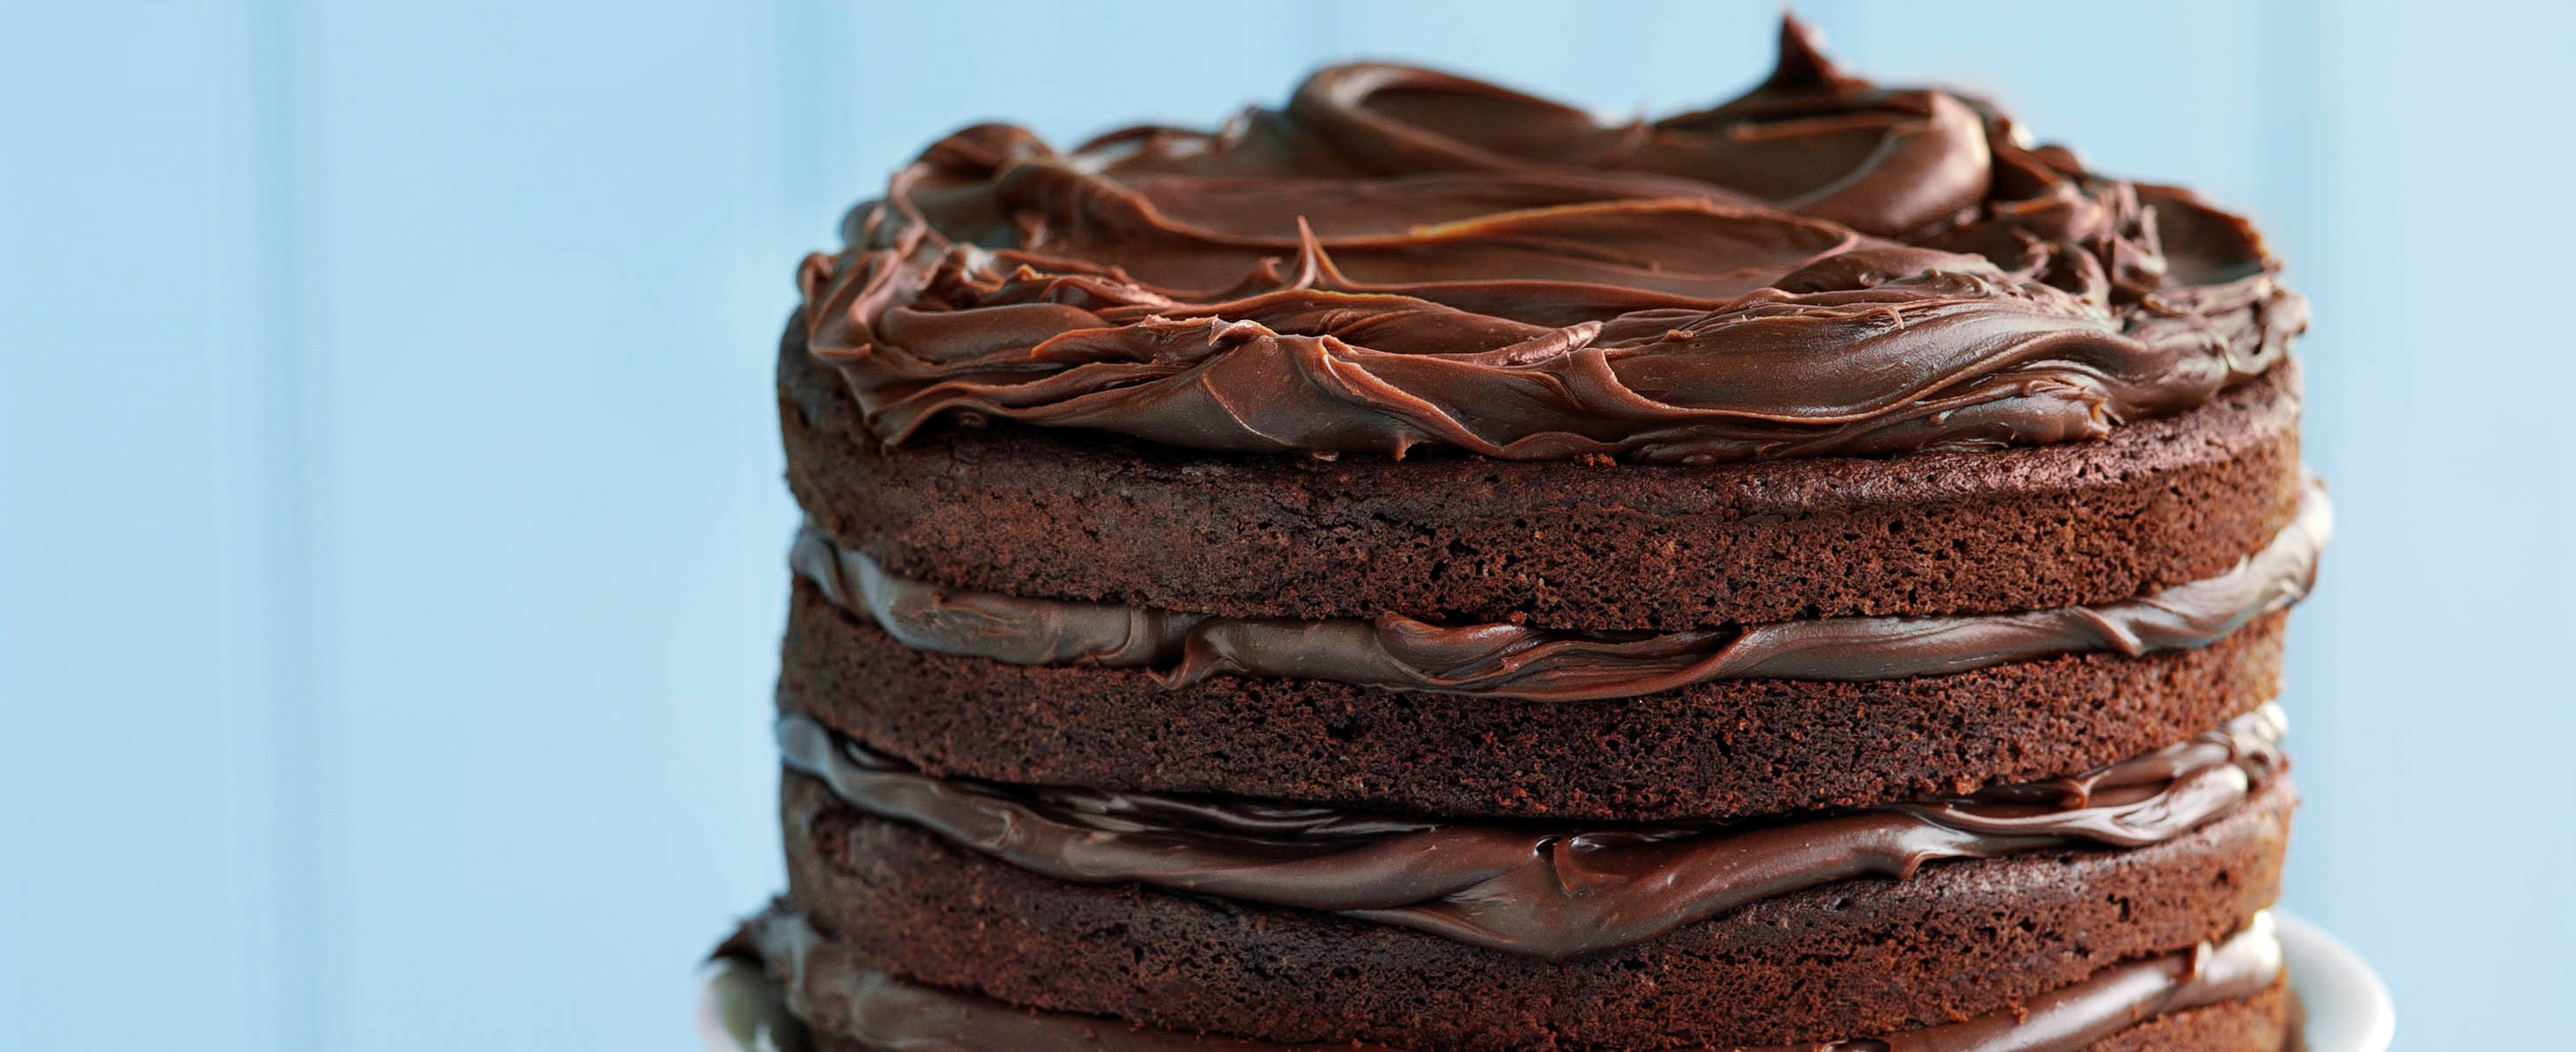 18 Best Chocolate Cake Recipes